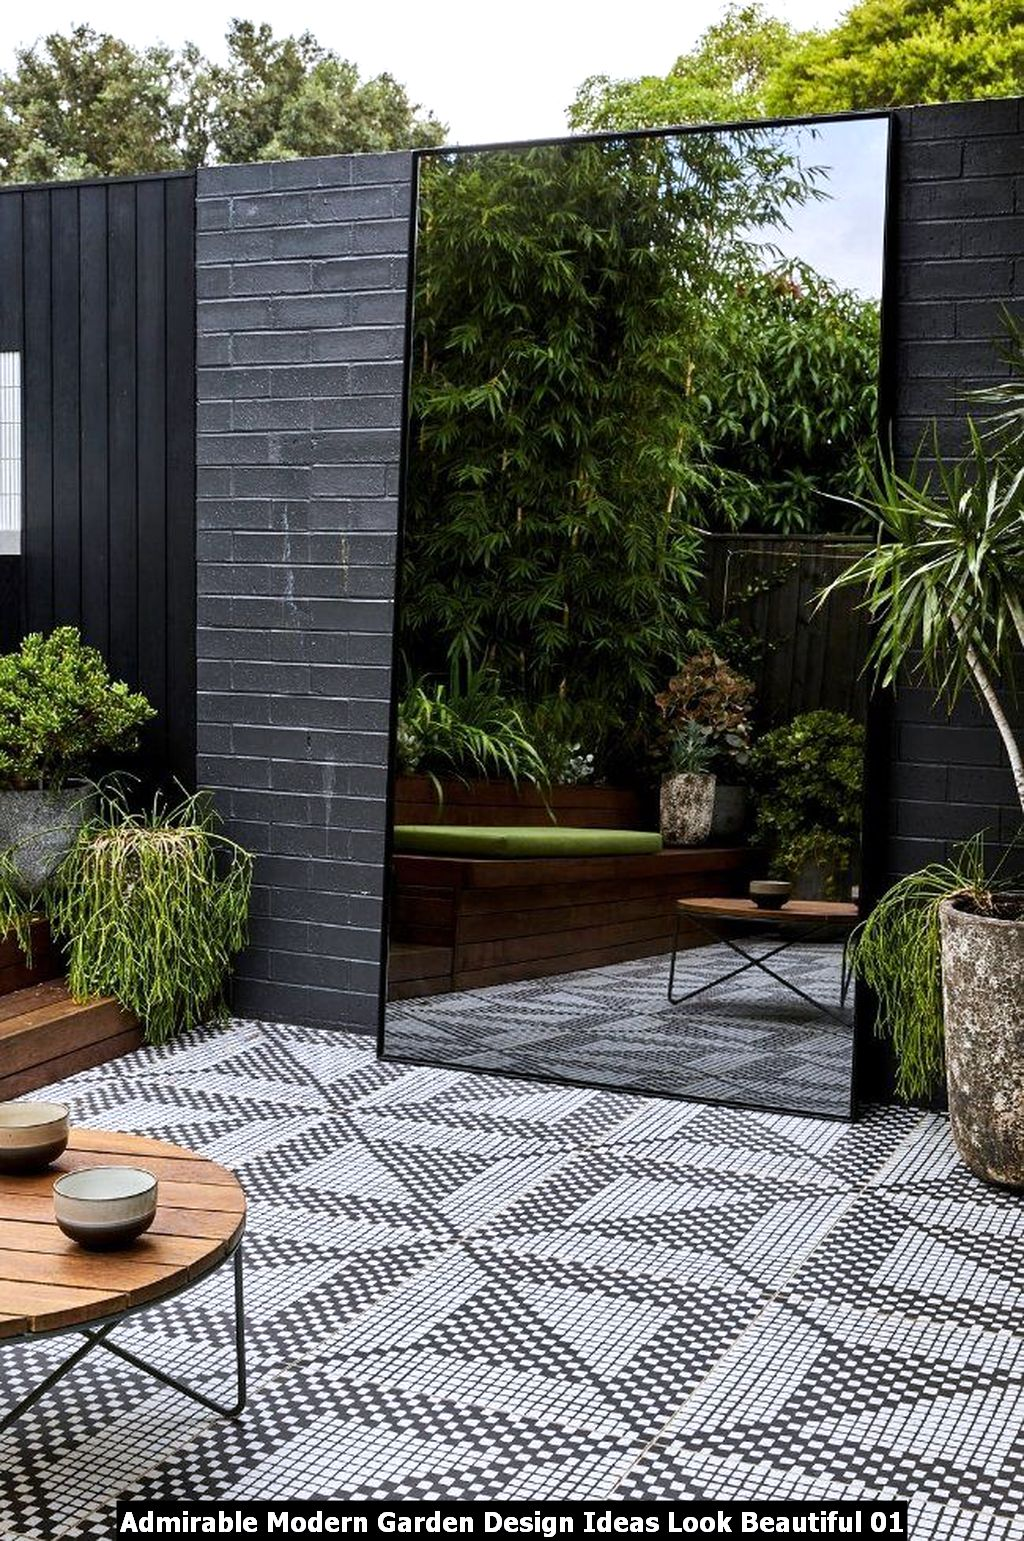 Admirable Modern Garden Design Ideas Look Beautiful 01